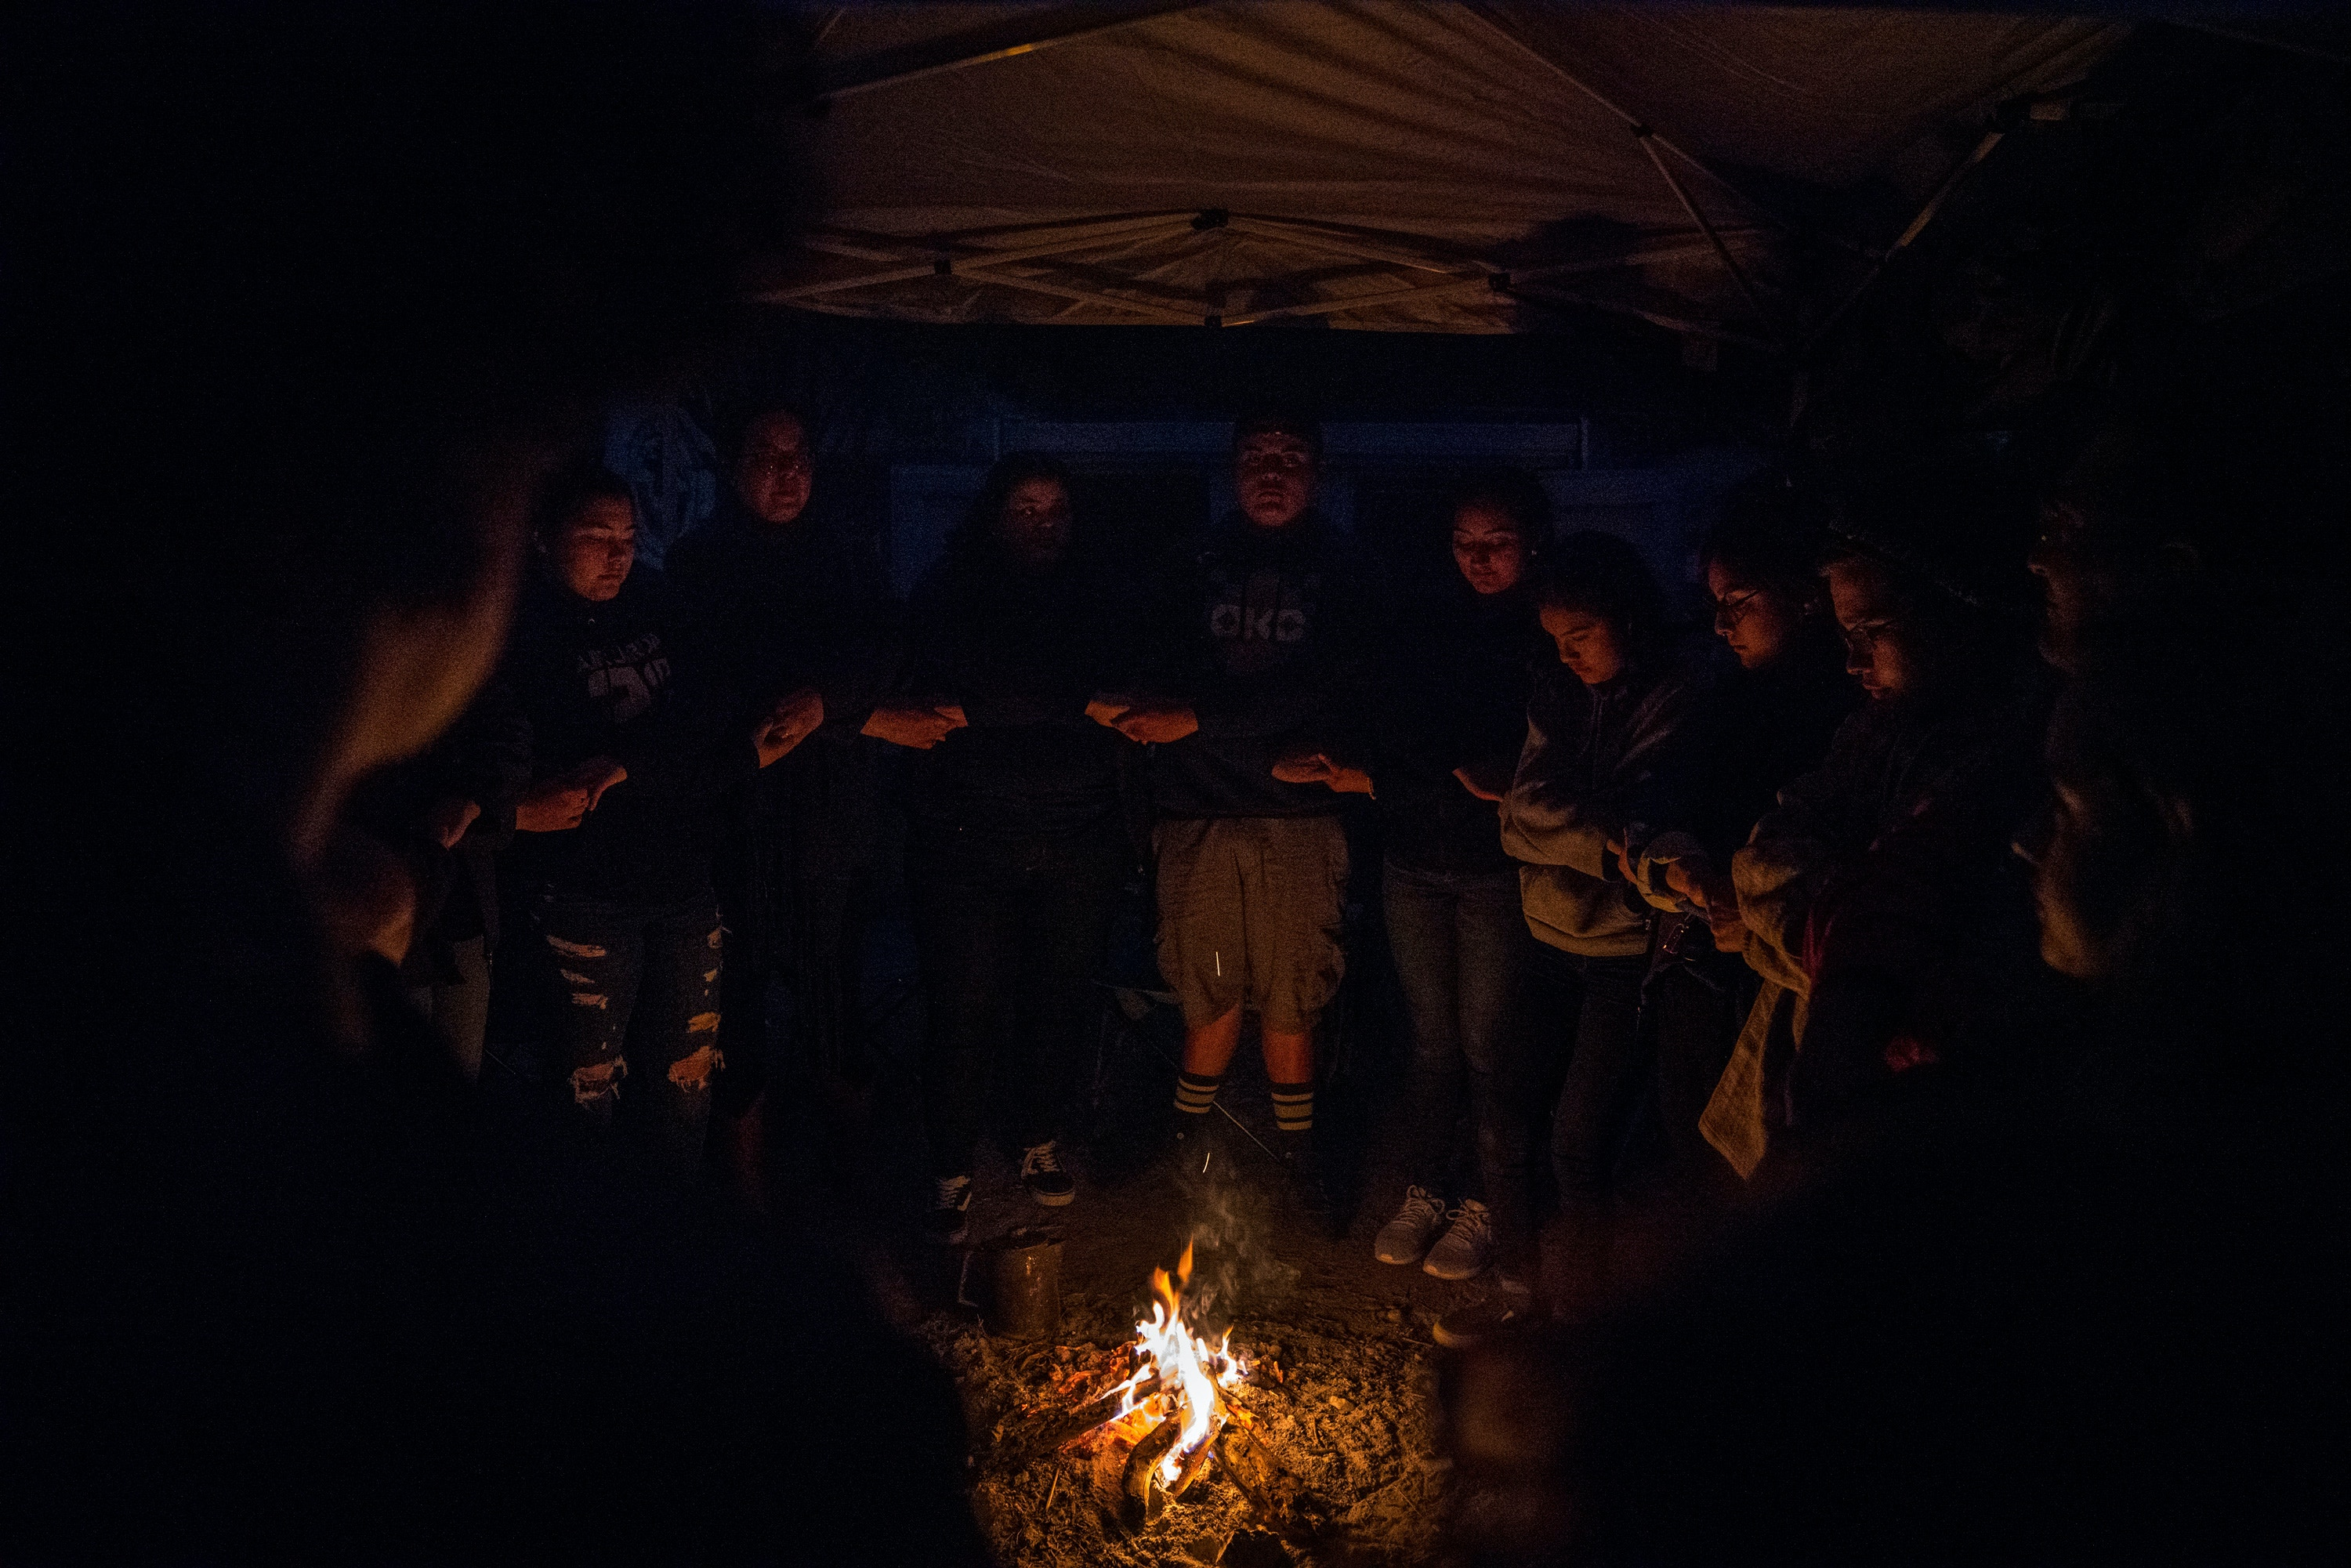 """Al Exito"" members along with Carrizo/Comecrudo Tribe members, and activists gather around the fire to share things that they are thankful for at Yalui Village in Hidalgo County, Texas on March 17, 2019.Photo: Verónica G. Cárdenas for The Intercept"